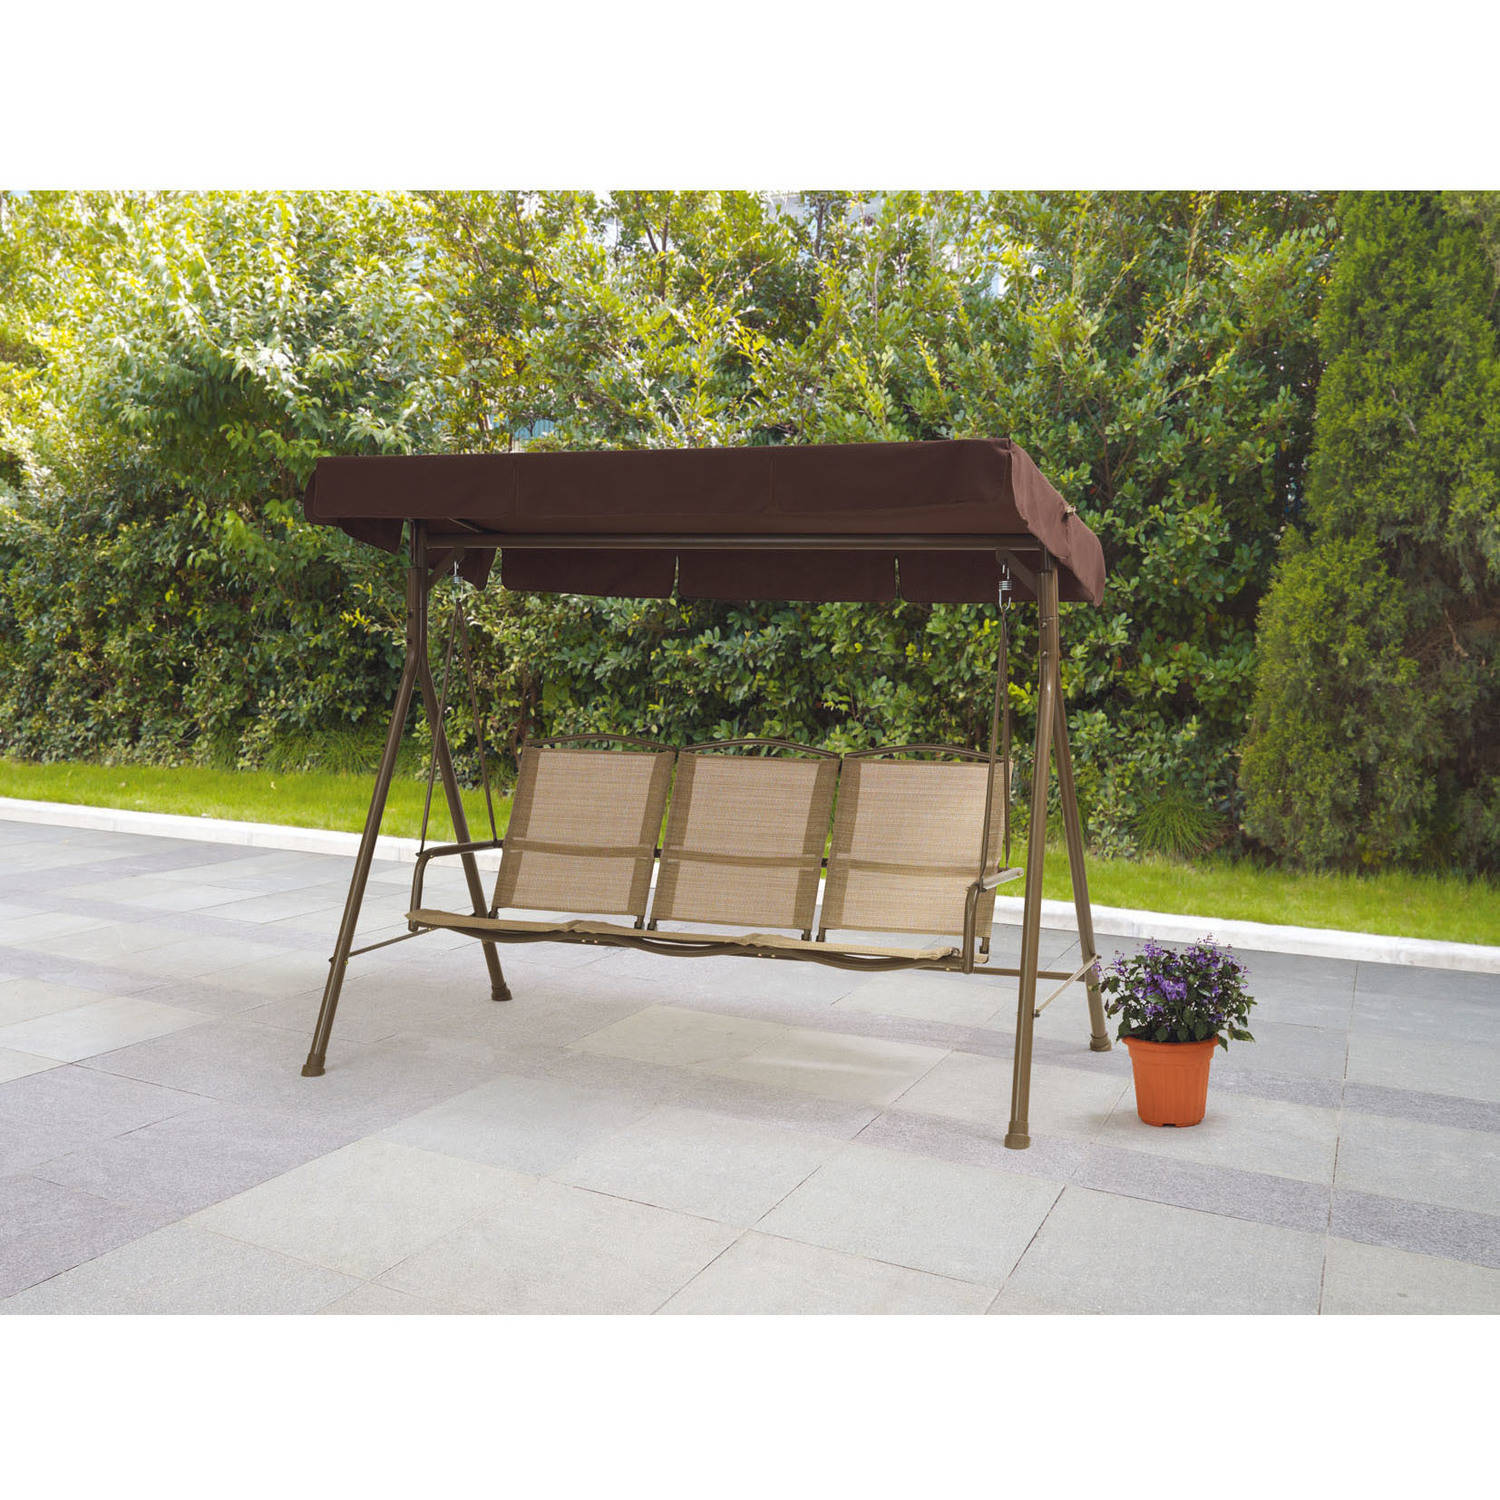 Mainstays Sand Dune Outdoor Sling Swing with Canopy, Seats 3, Dune